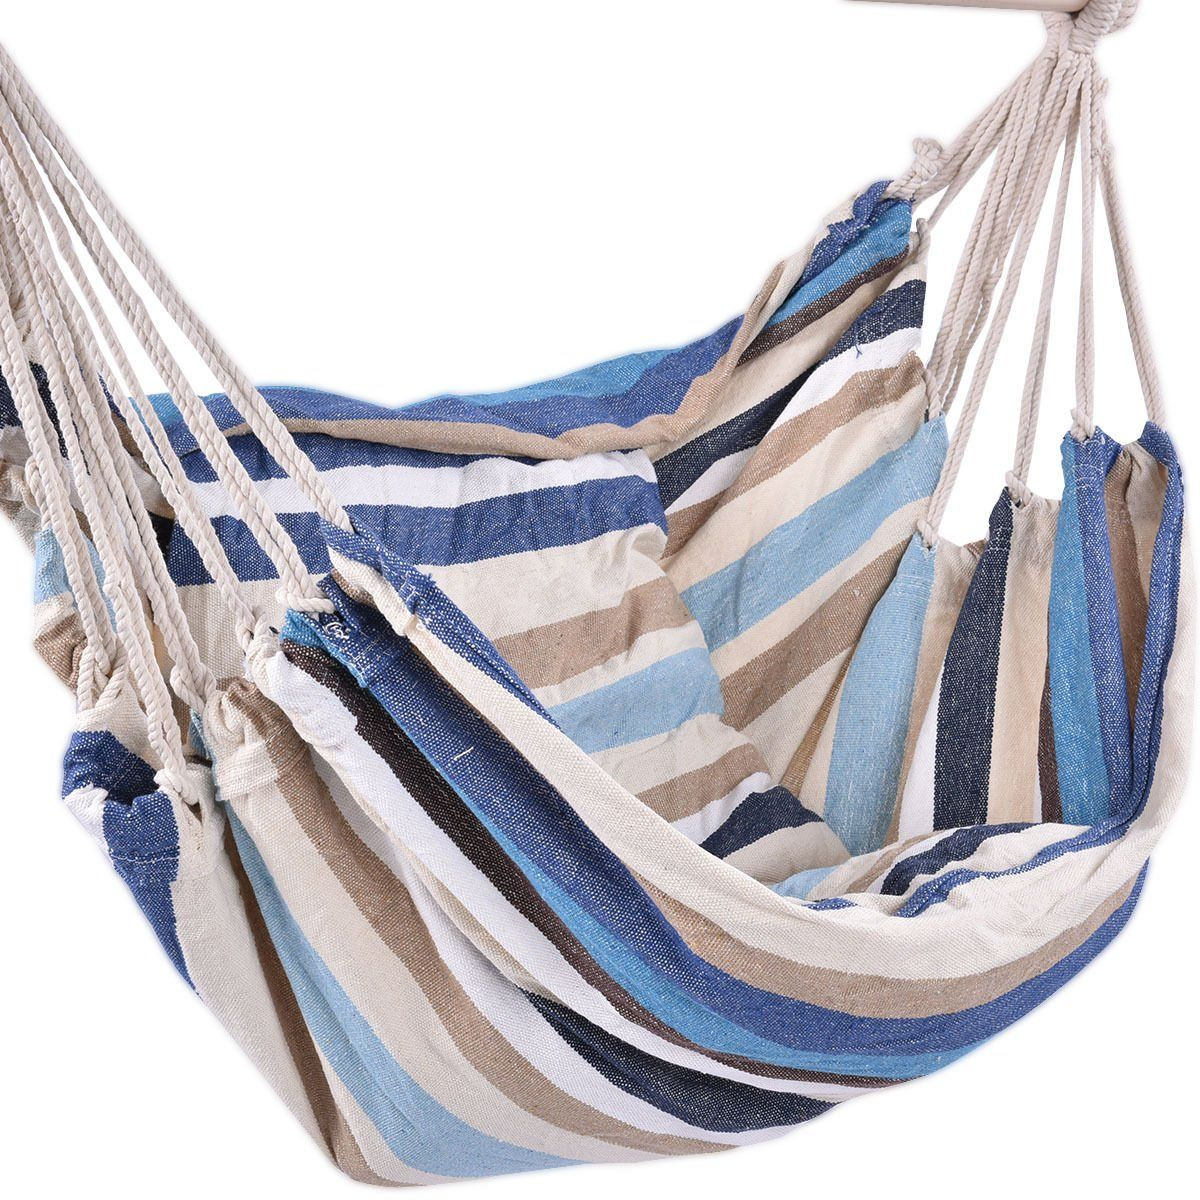 Deluxe Hammock Rope Chair Porch Yard Tree Hanging Air